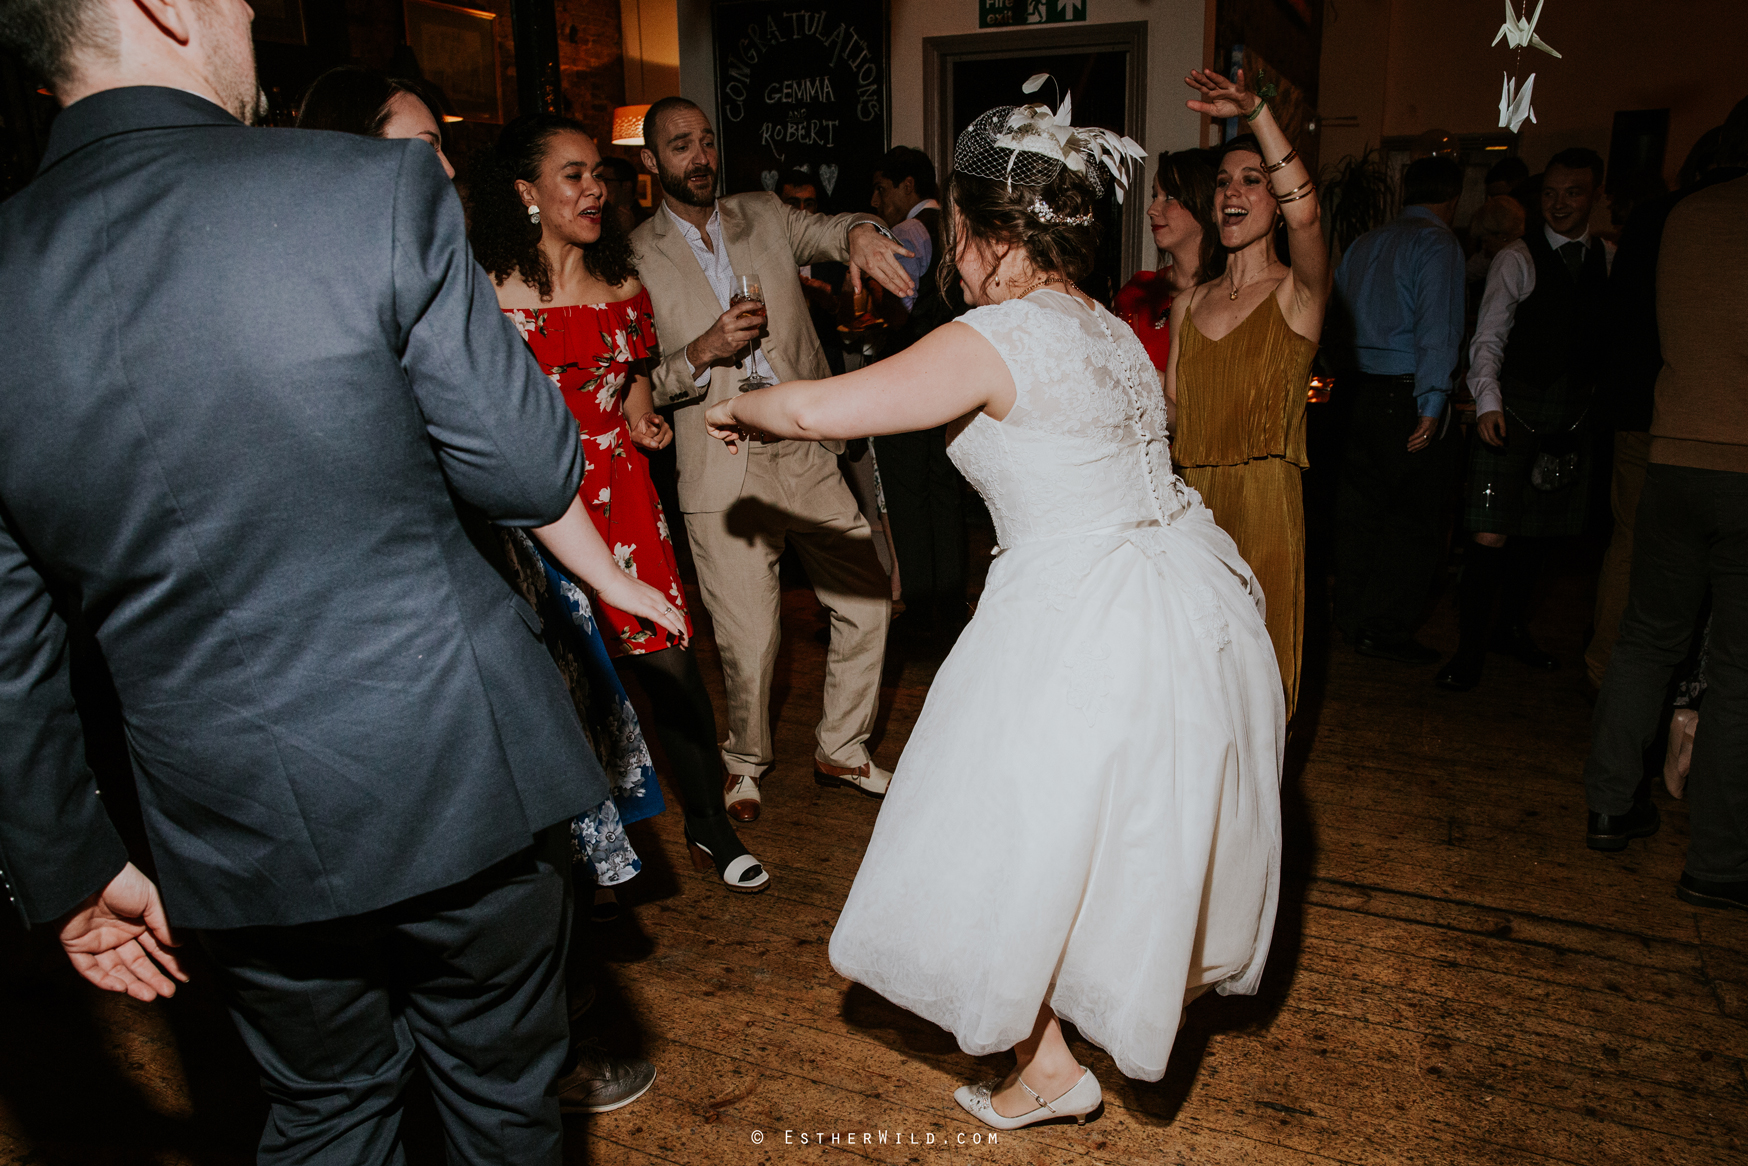 Islington_Town_Hall_Assembly_Hall_Council_Chamber_The_Star_Pub_London_Sacred_Wedding_Copyright_Esther_Wild_Photographer_IMG_2097.jpg